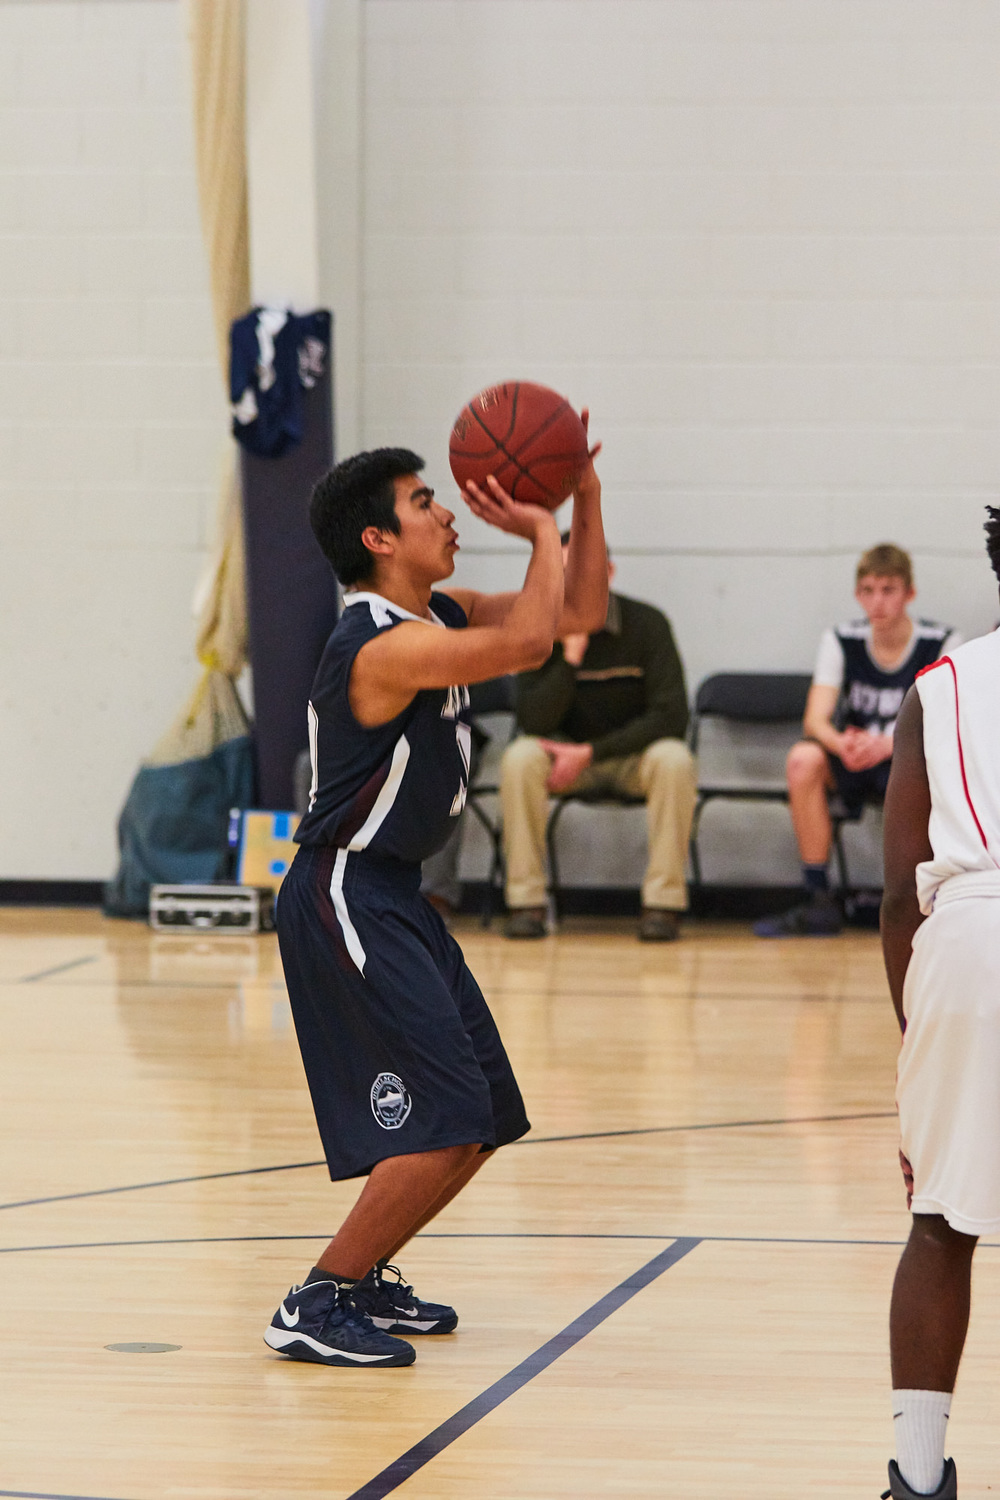 Boys Varsity Basketball vs. Holderness School - January 20, 2016 13877 - 17-32-29.jpg